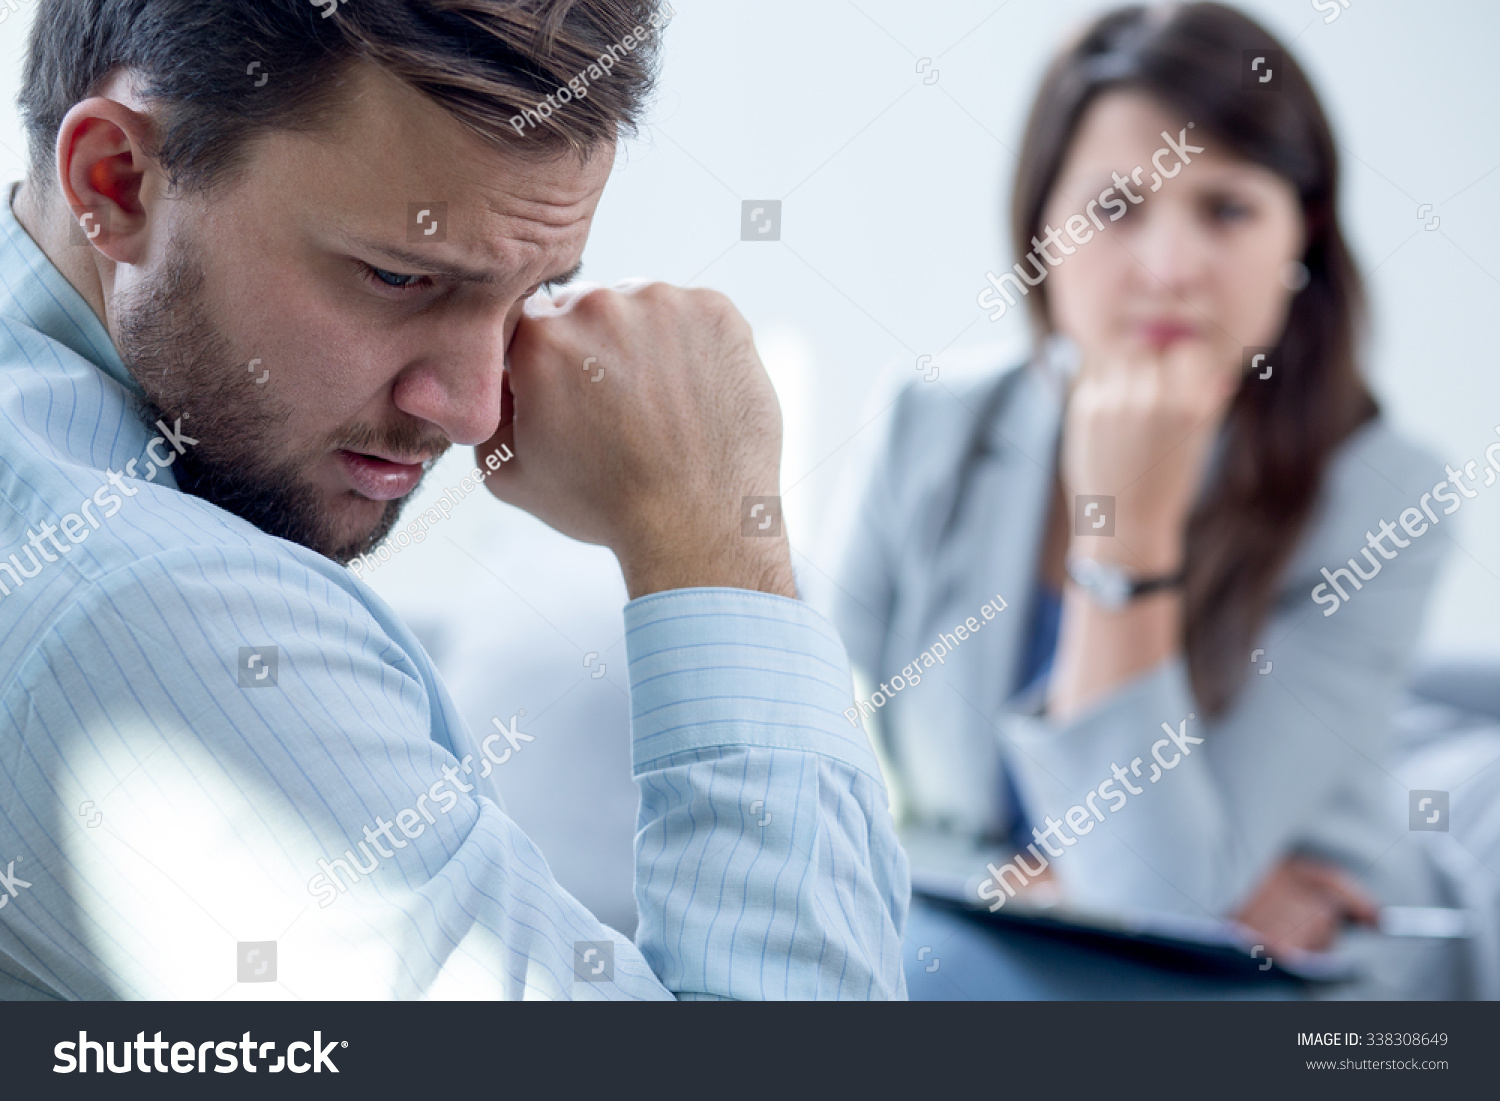 Resigned Man Receiving Psychotherapy Psychiatrists Office Stock Photo 338308649 - Shutterstock